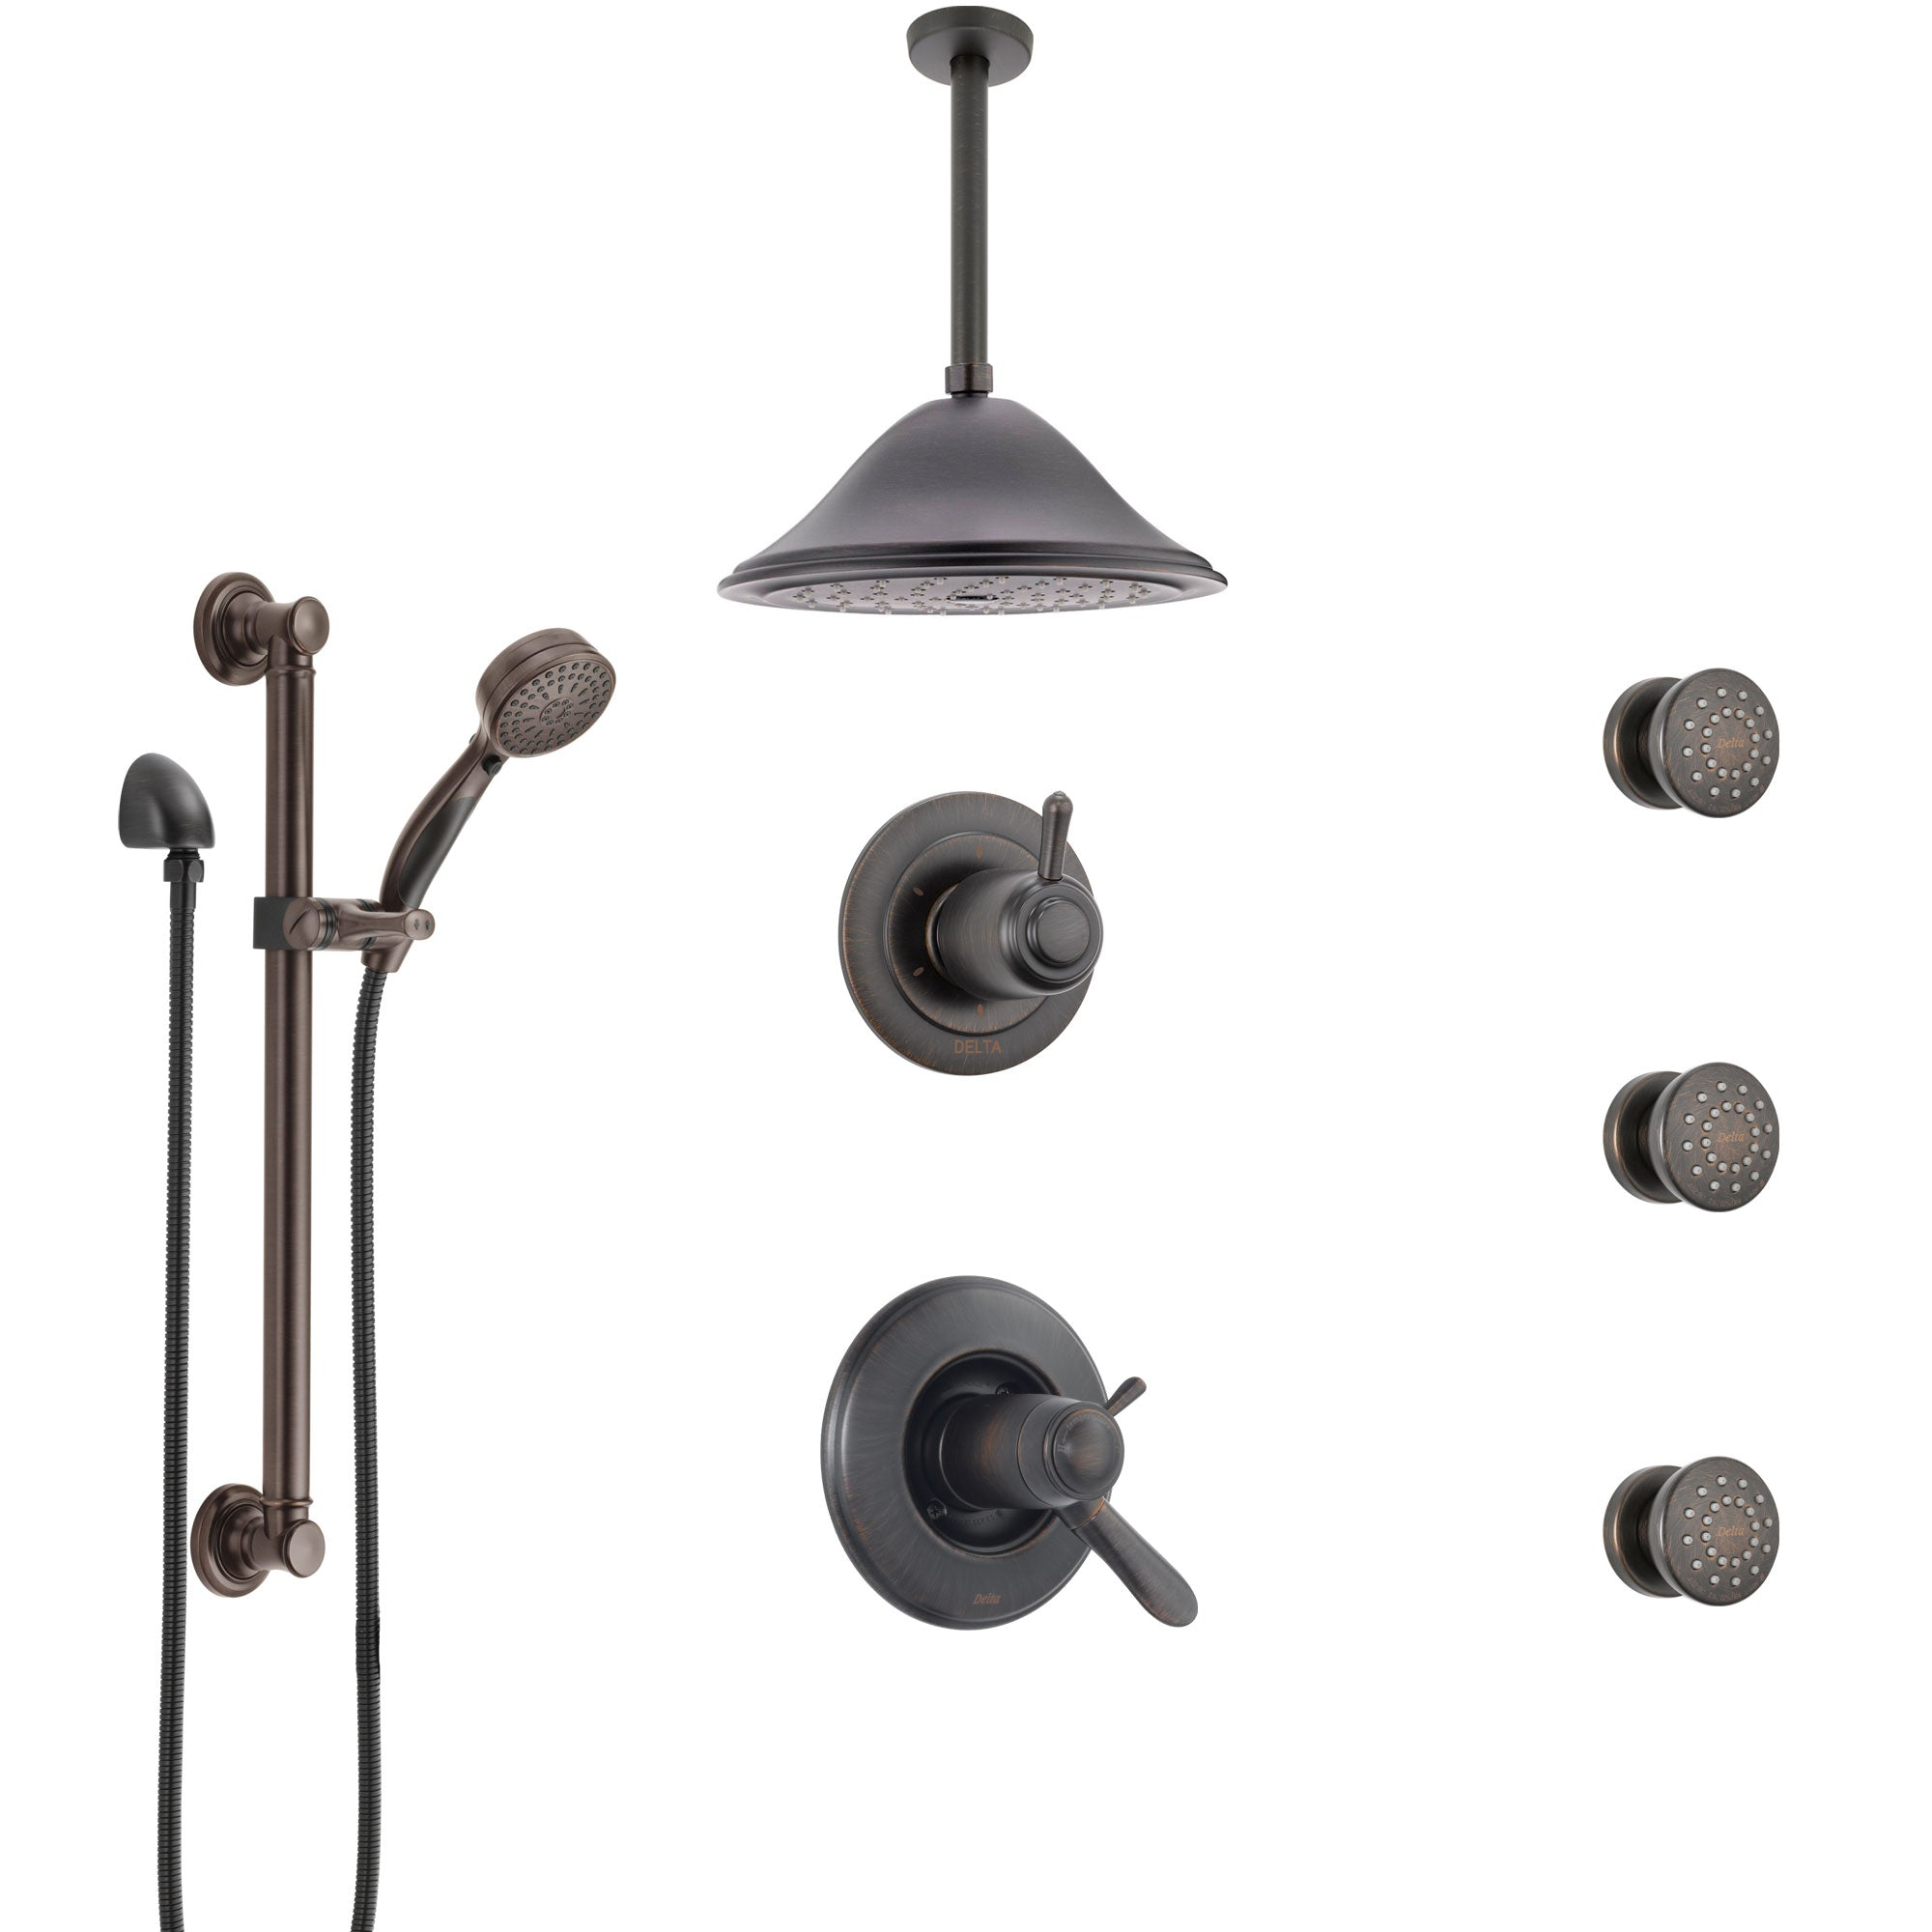 Delta Lahara Venetian Bronze Dual Thermostatic Control Shower System, Diverter, Ceiling Showerhead, 3 Body Sprays, and Grab Bar Hand Spray SS17T382RB7